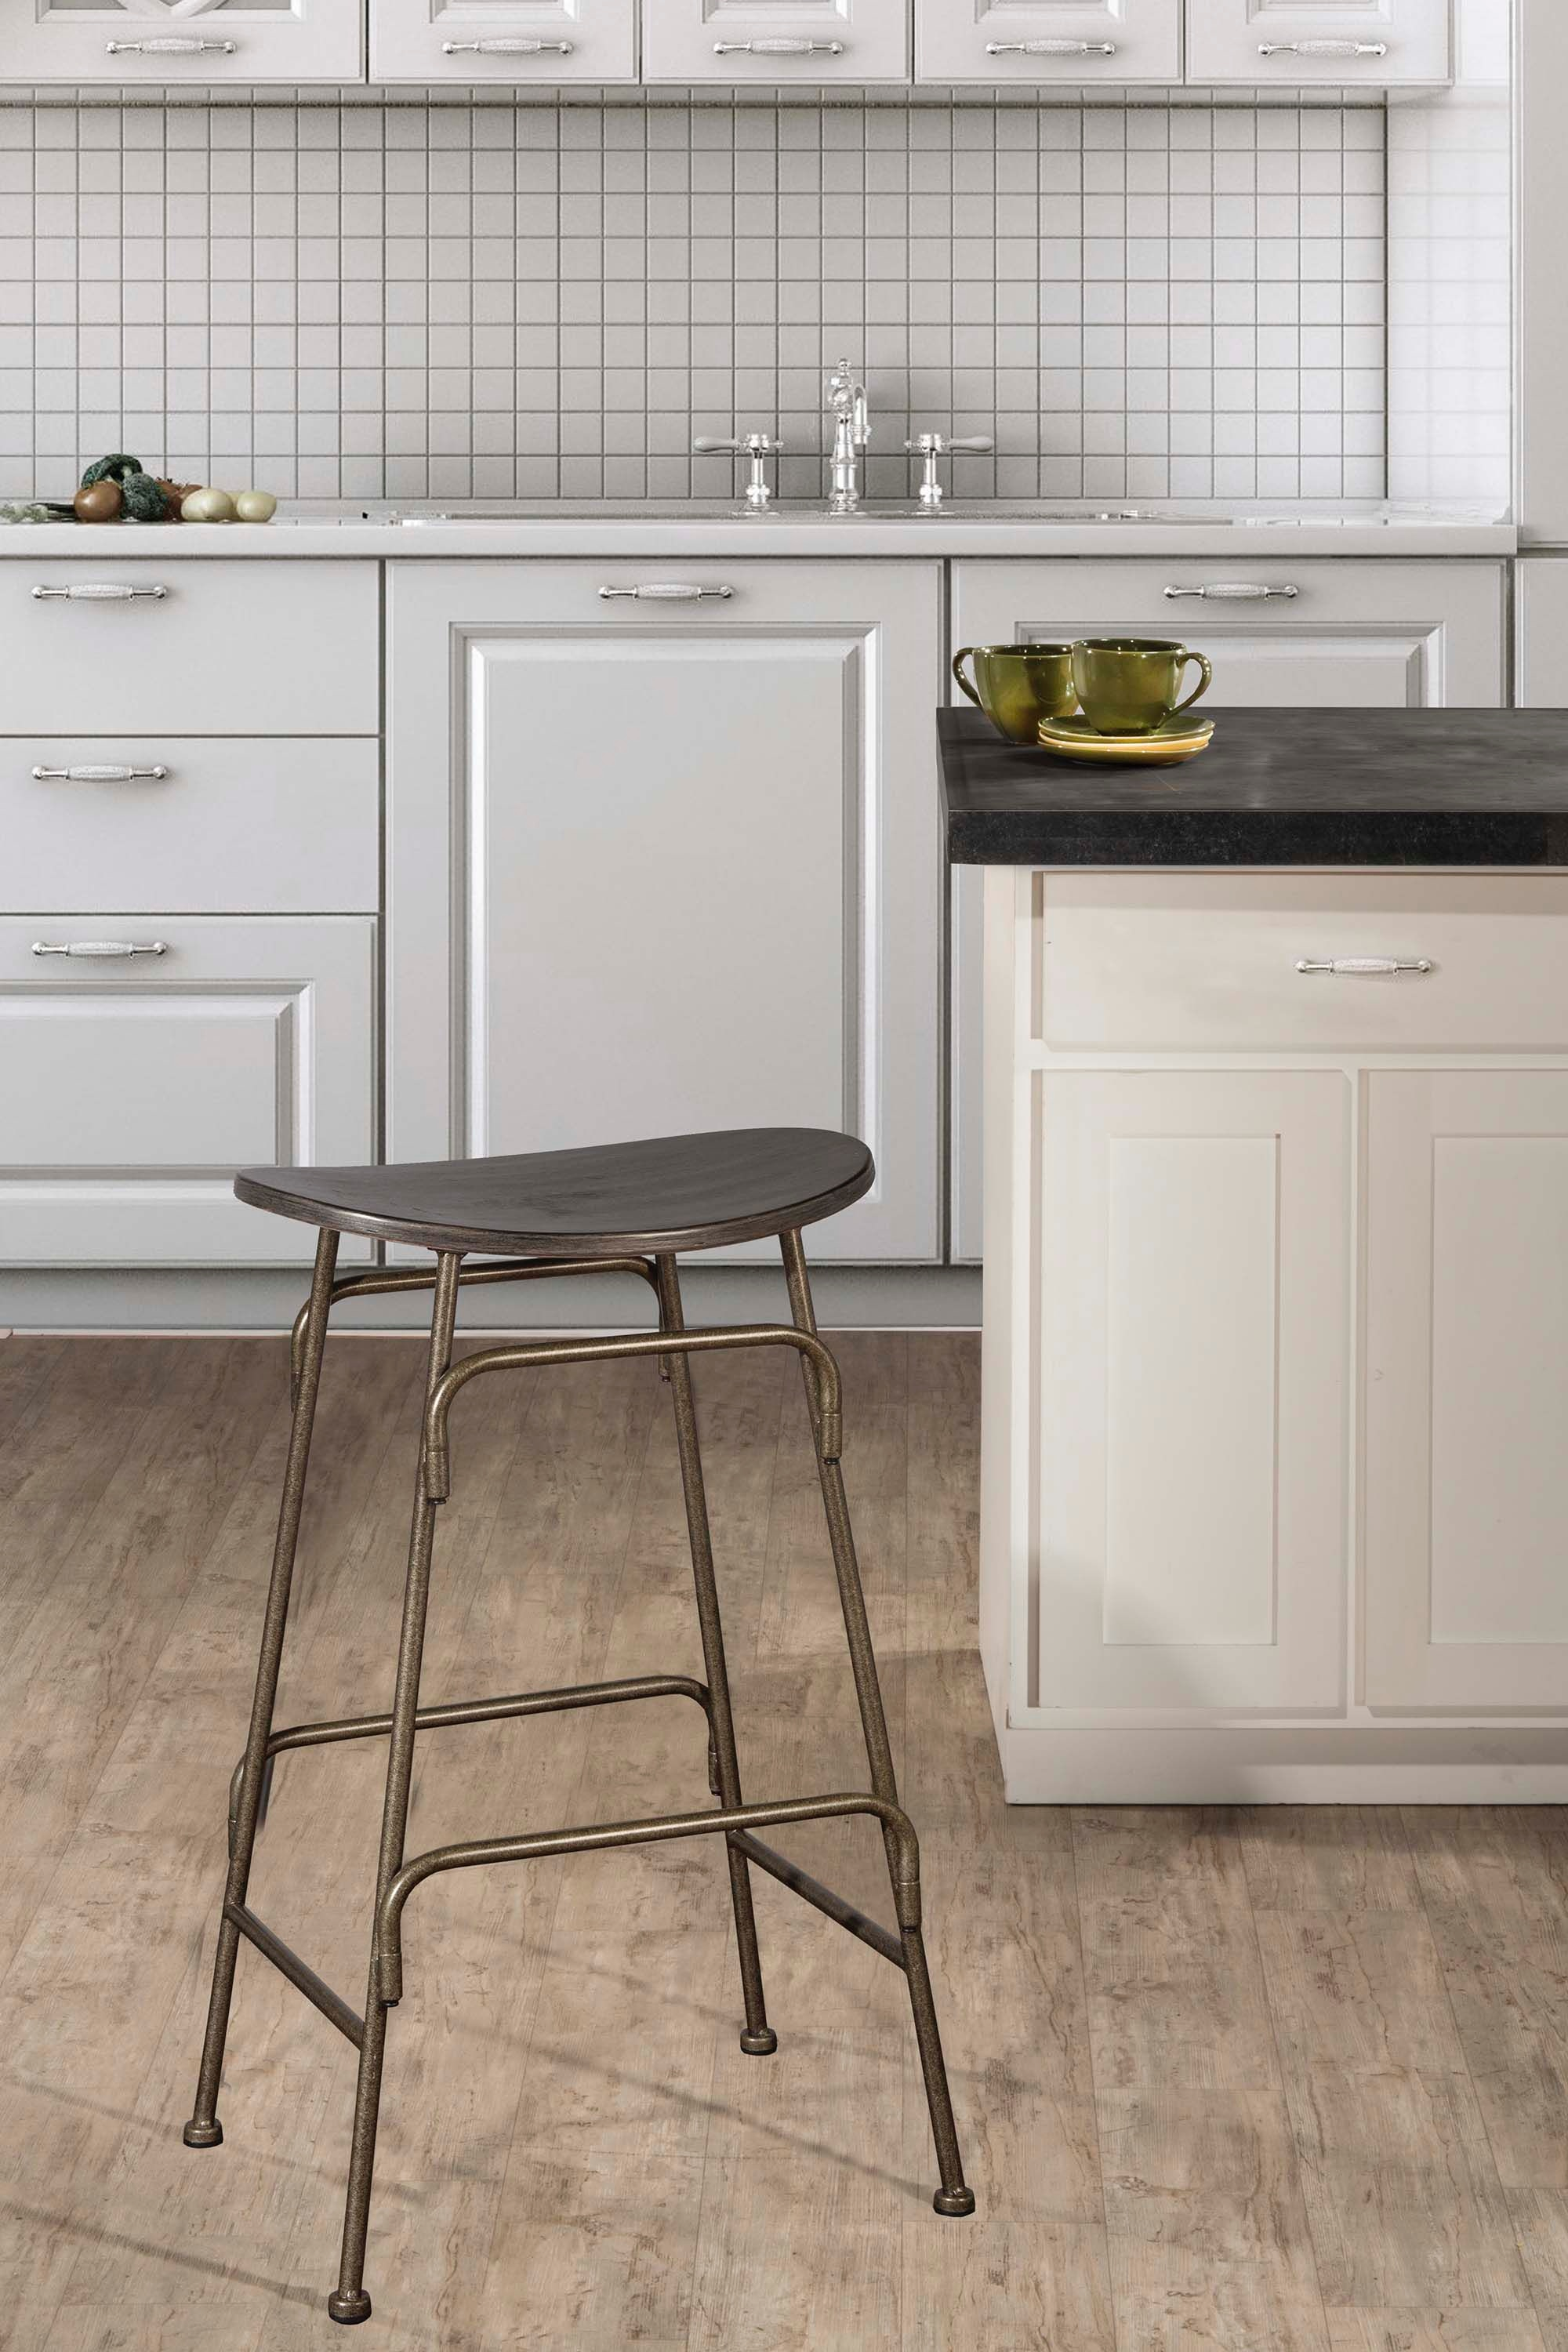 Tremendous Hillsdale Furniture Bar And Game Room Mitchell Non Swivel Backless Counter Stool Hil4032827 Walter E Smithe Furniture Design Gmtry Best Dining Table And Chair Ideas Images Gmtryco